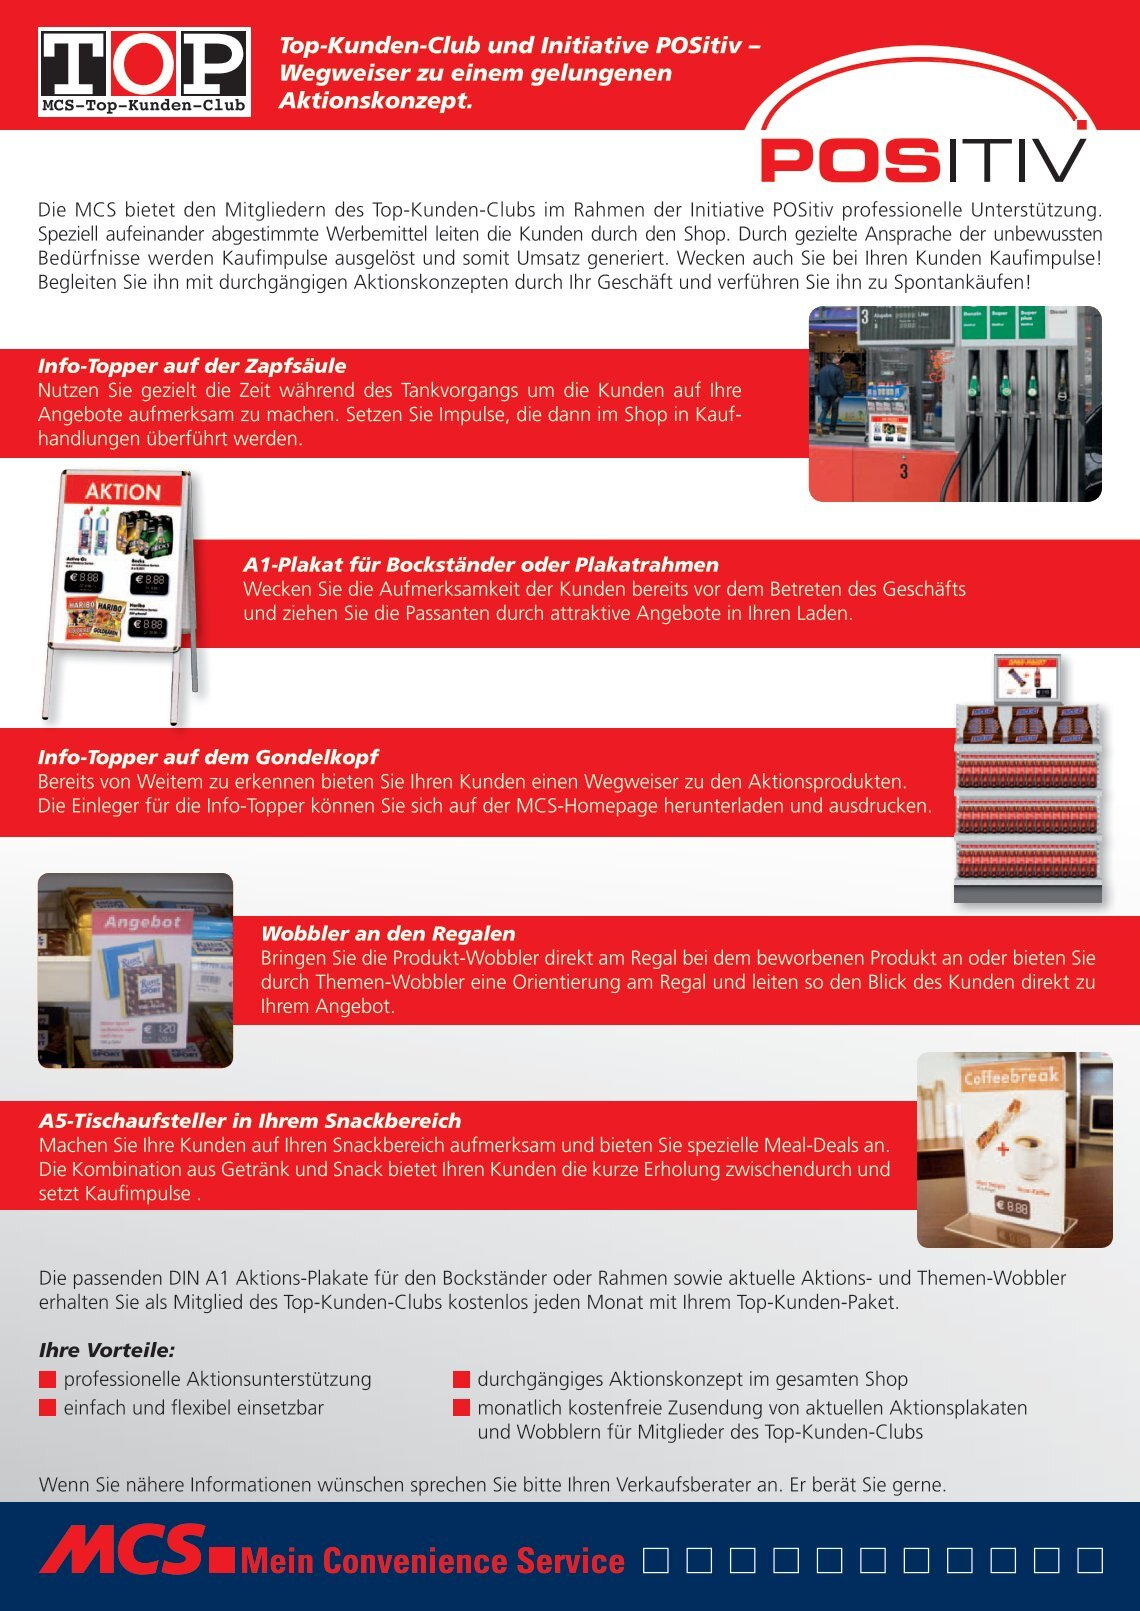 9 free Magazines from MCS.CONVENIENCE.DE